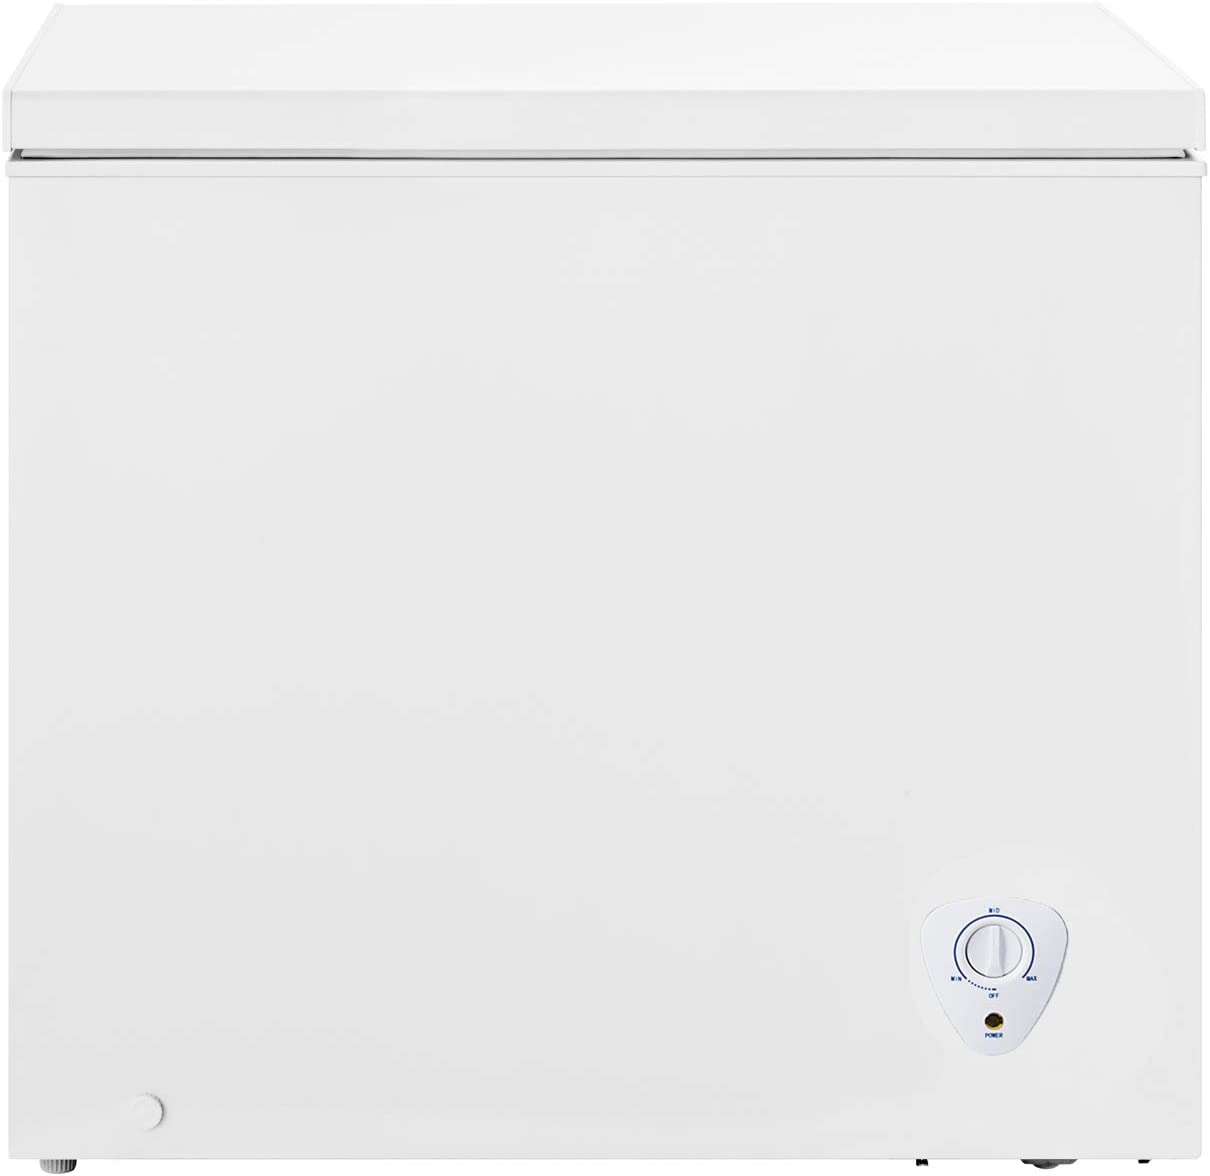 Techomey Chest Freezer 5 CU. FT, Deep Freezer, Top Open Door with Adjustable Thermostat Control&Removable Wire Basket, White